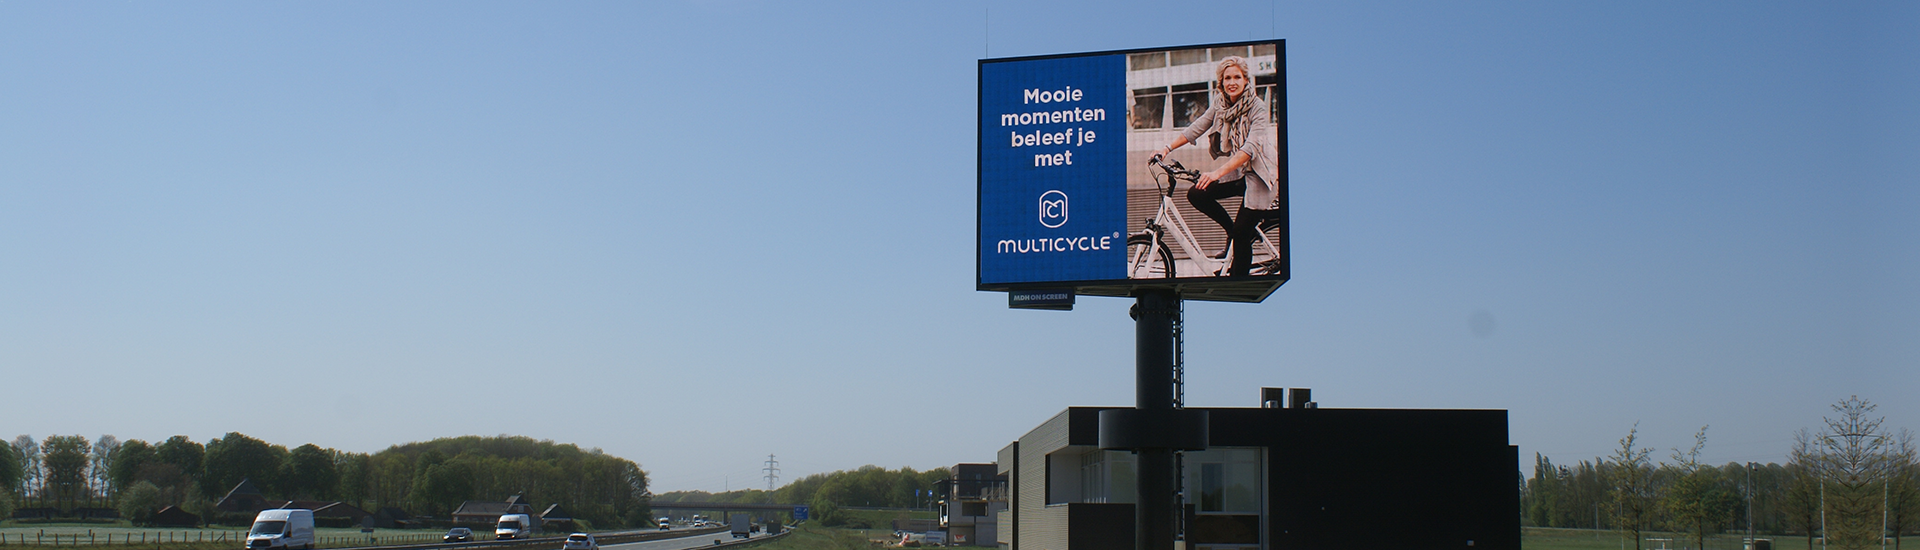 Outdoor LED digitale reclamemast A18